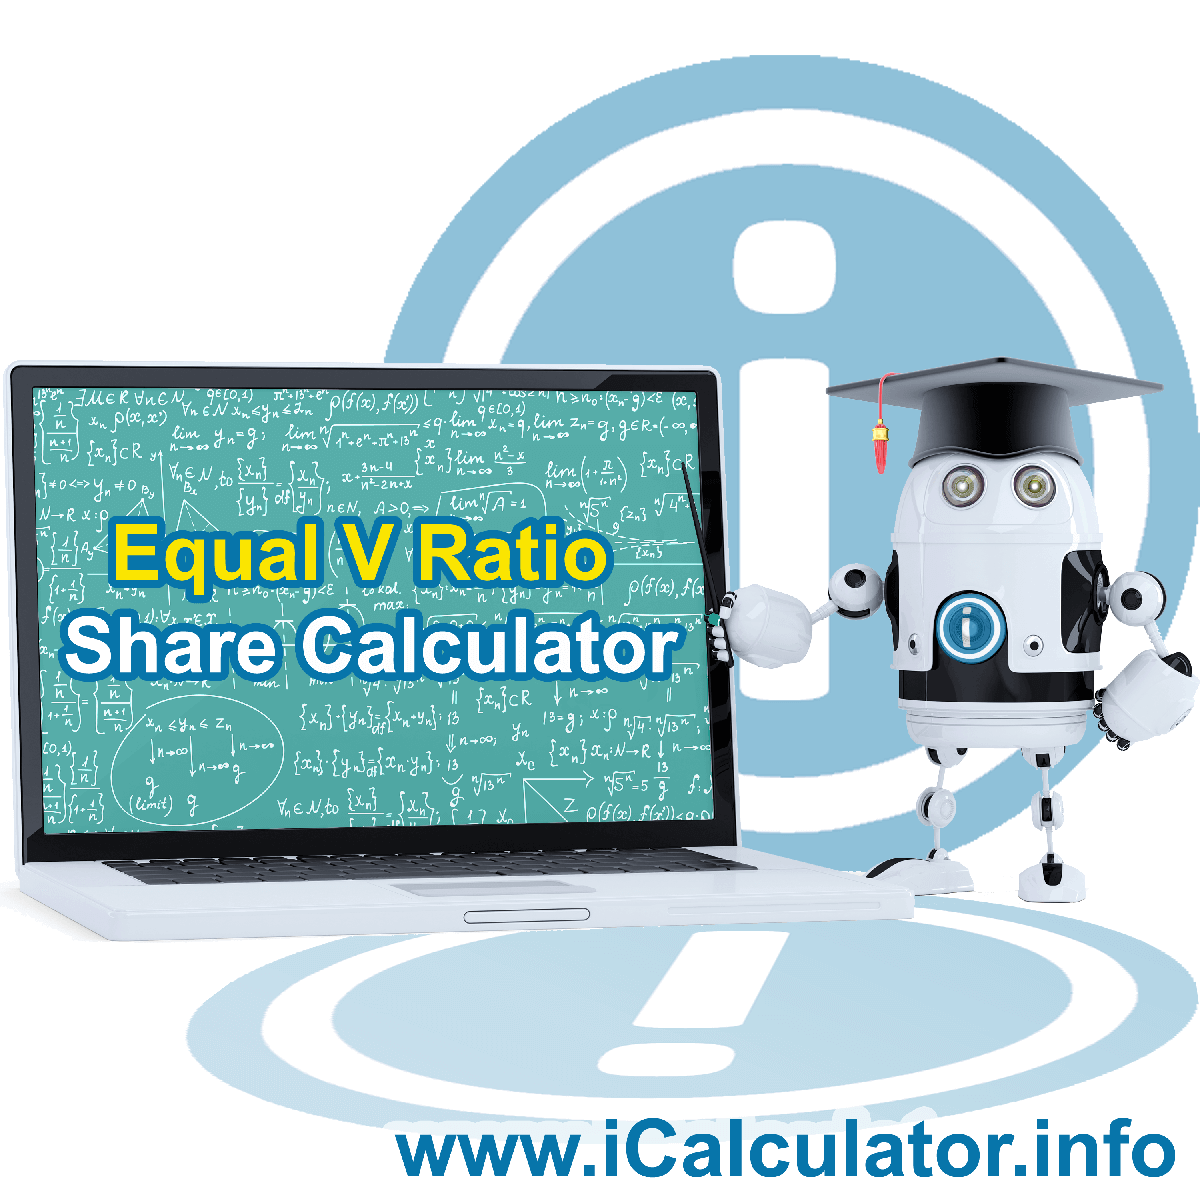 Equal Share verse Ratio Share. This image shows the properties and equal share verse ratio share formula for the Equal Share verse Ratio Share